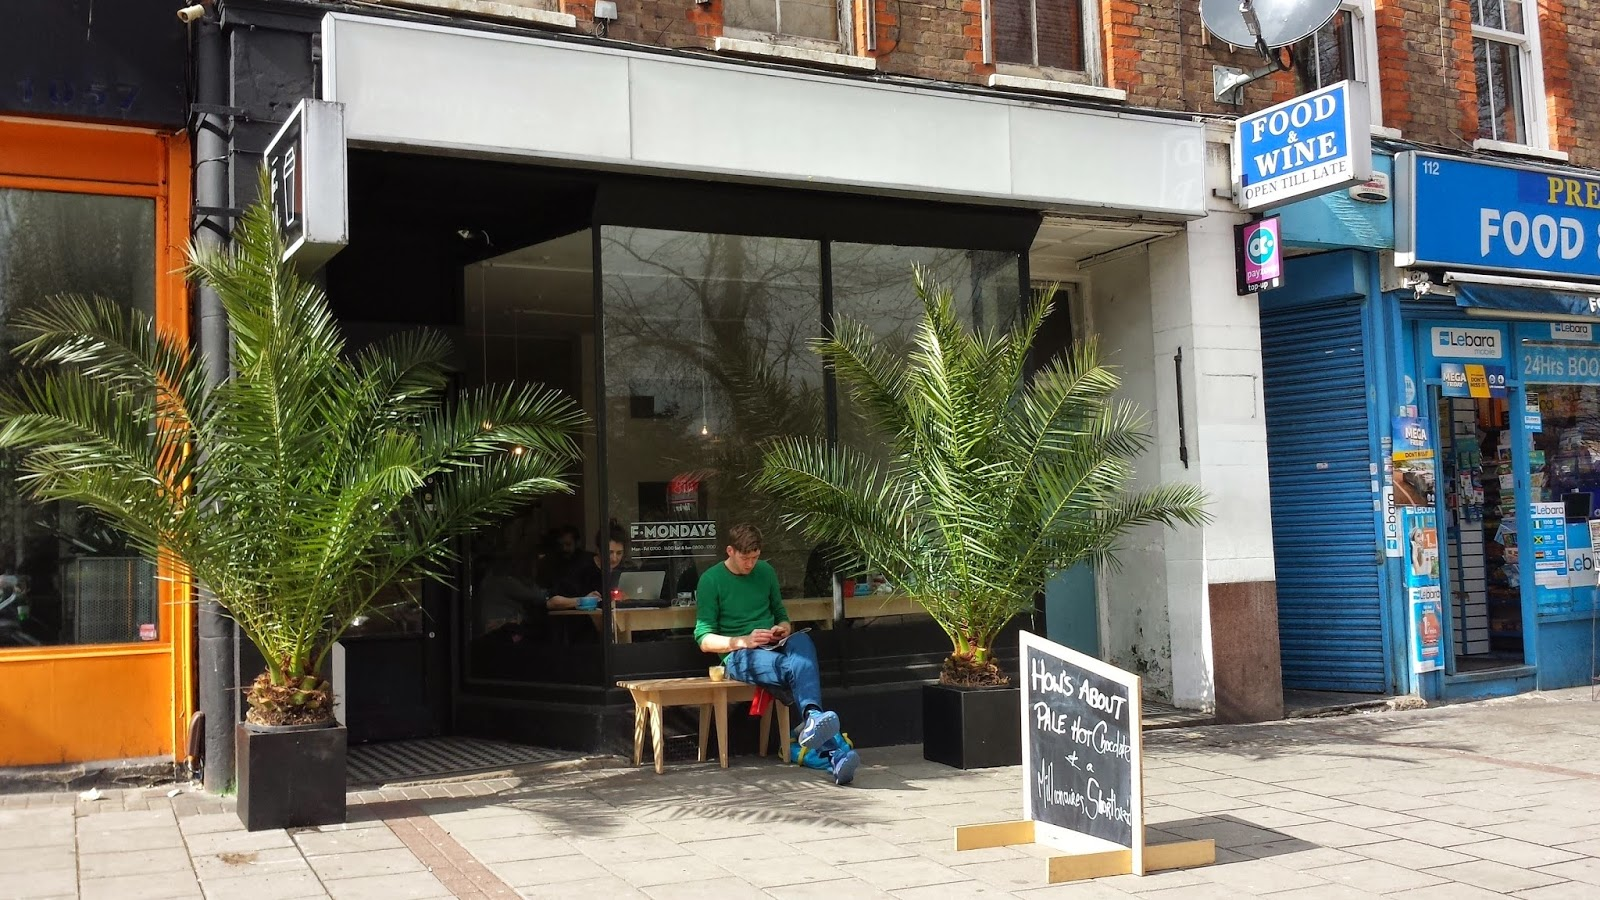 F. Mondays: A Work-Friendly Place in London